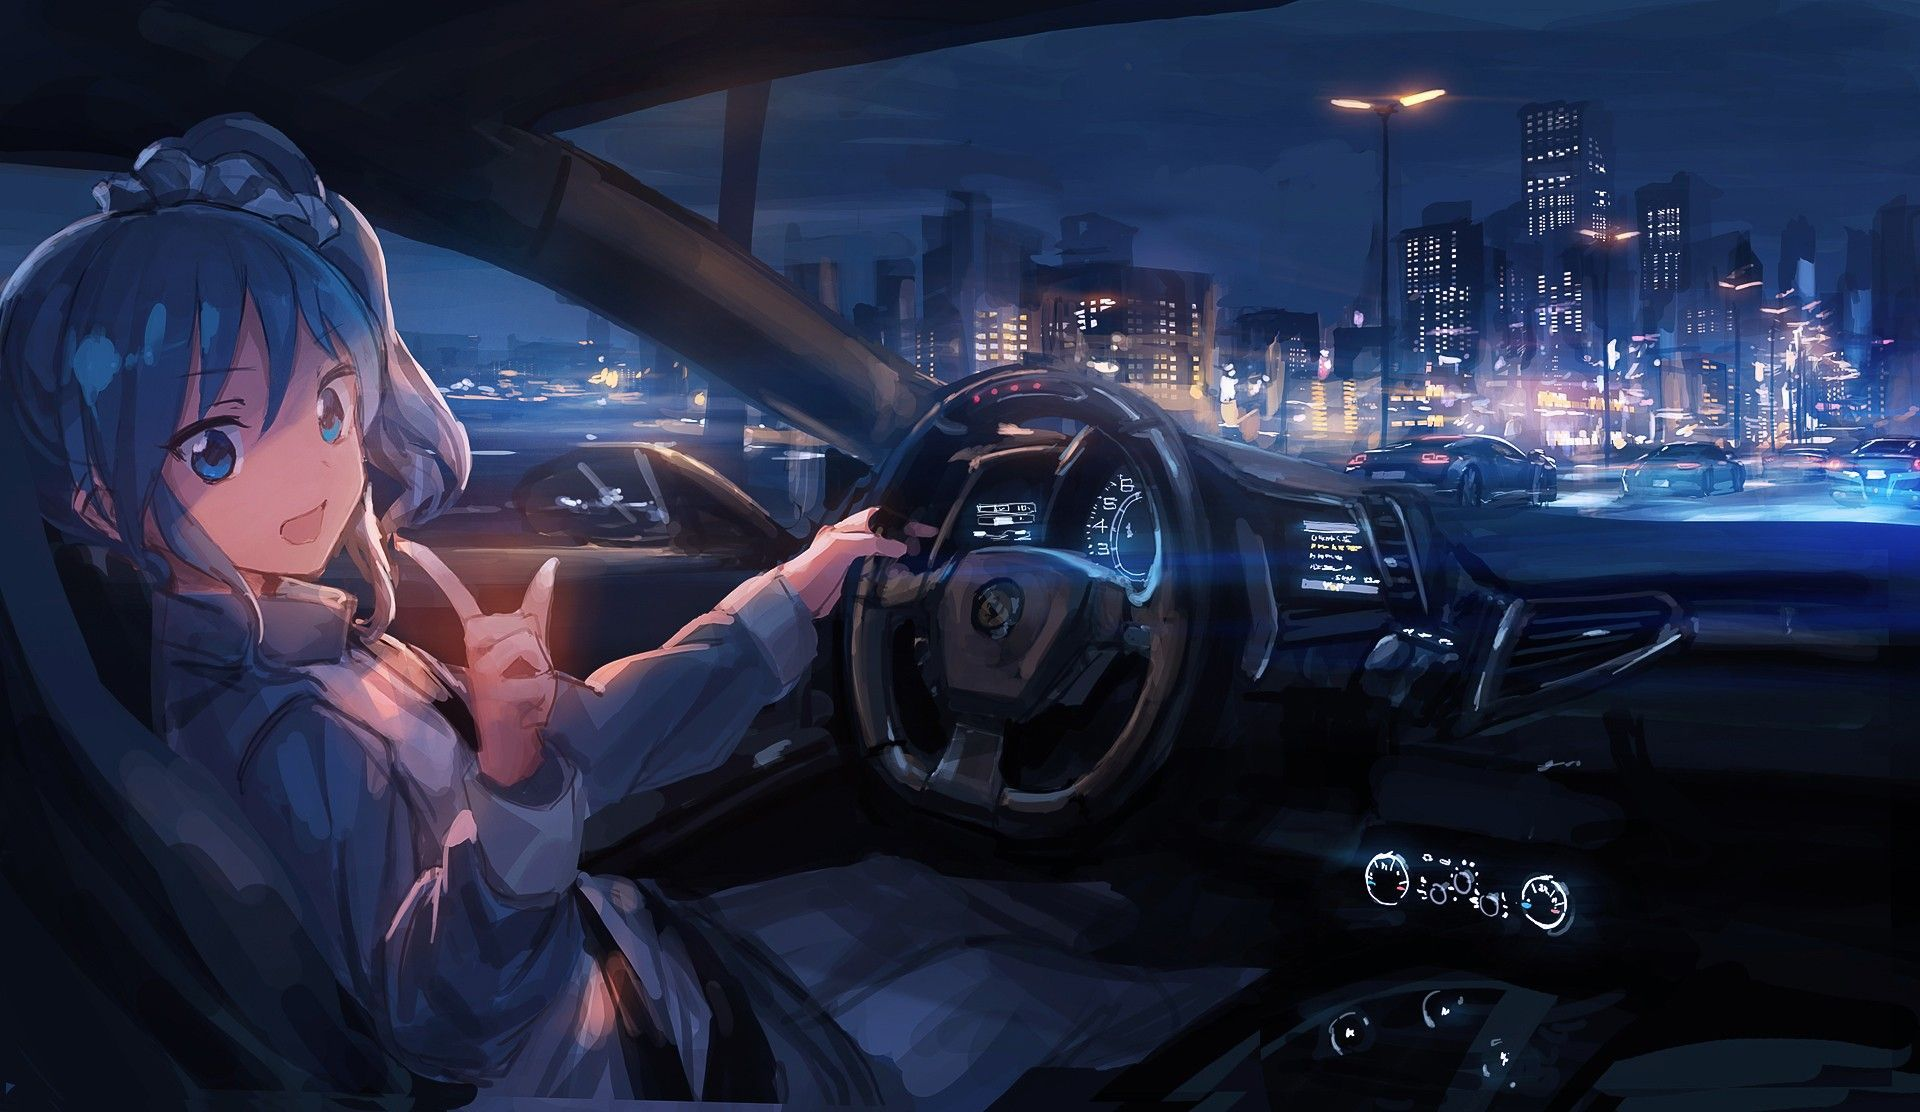 Aesthetic Anime Car Wallpapers - Wallpaper Cave